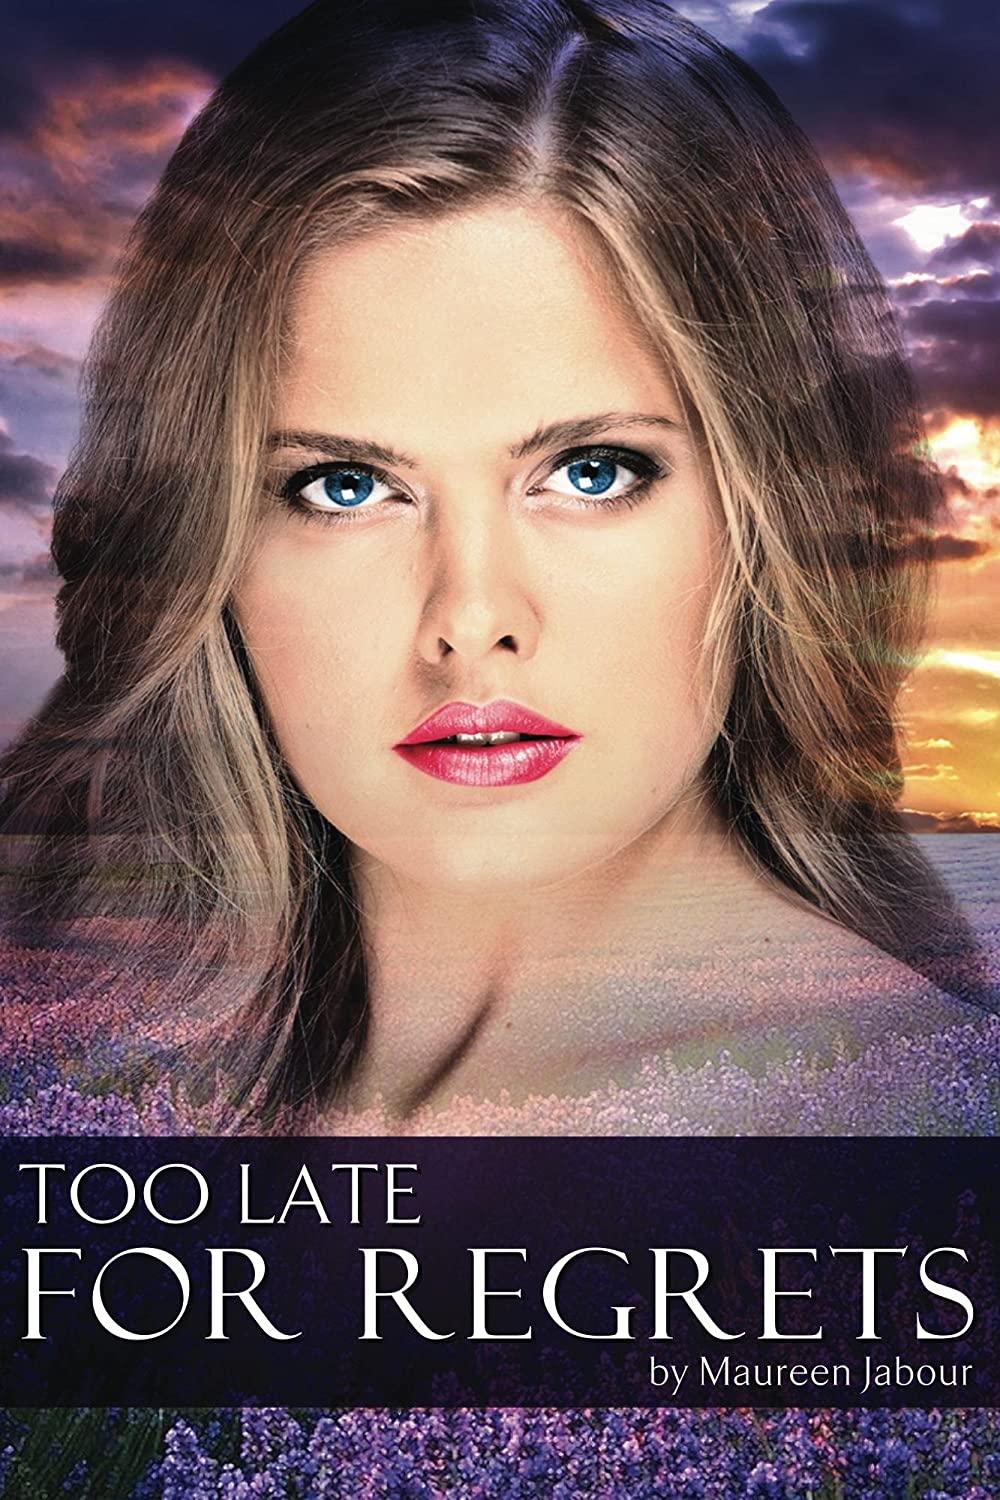 Too_Late_for_Regrets_Cover_for_Kindle